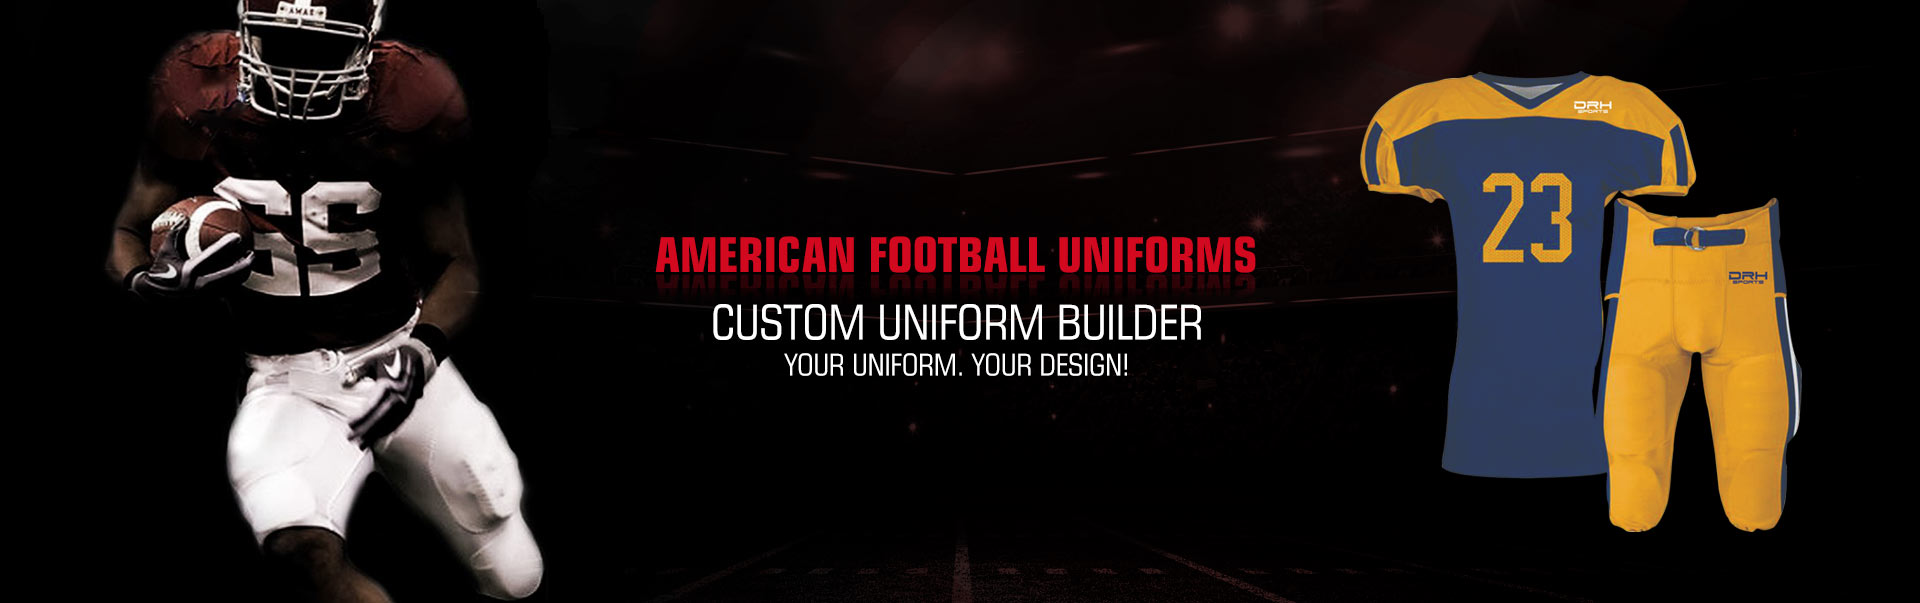 American Football Uniform Wholesaler, Suppliers in Aberdeen